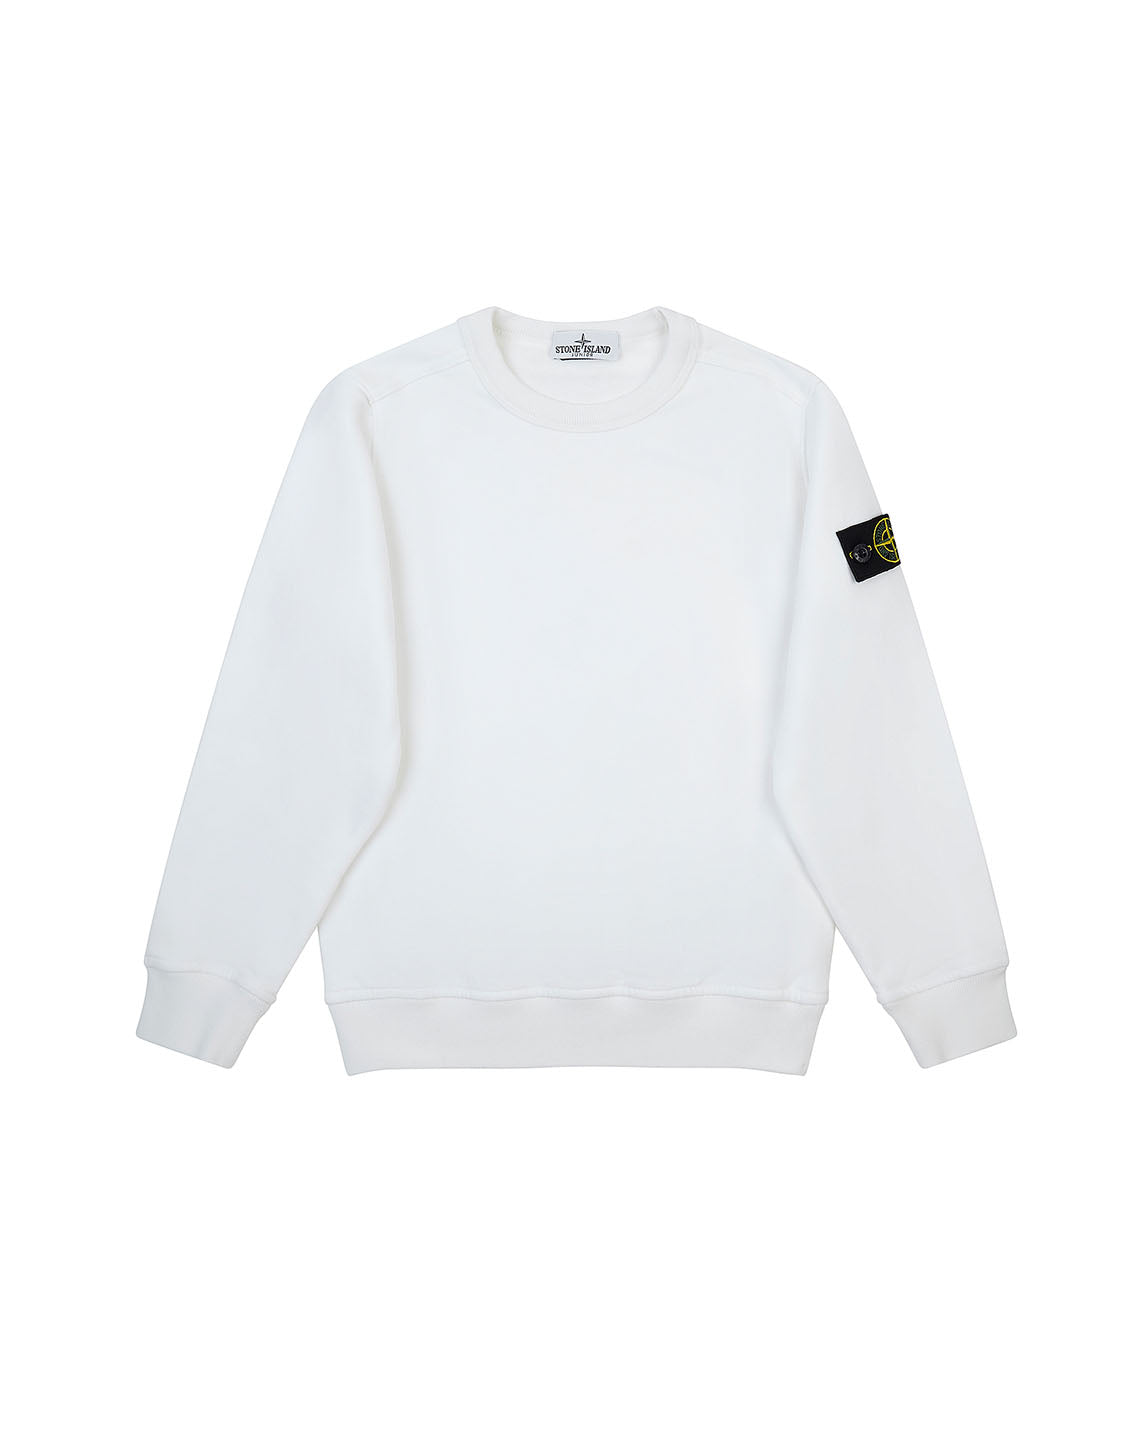 60940 Crewneck Sweatshirt in White